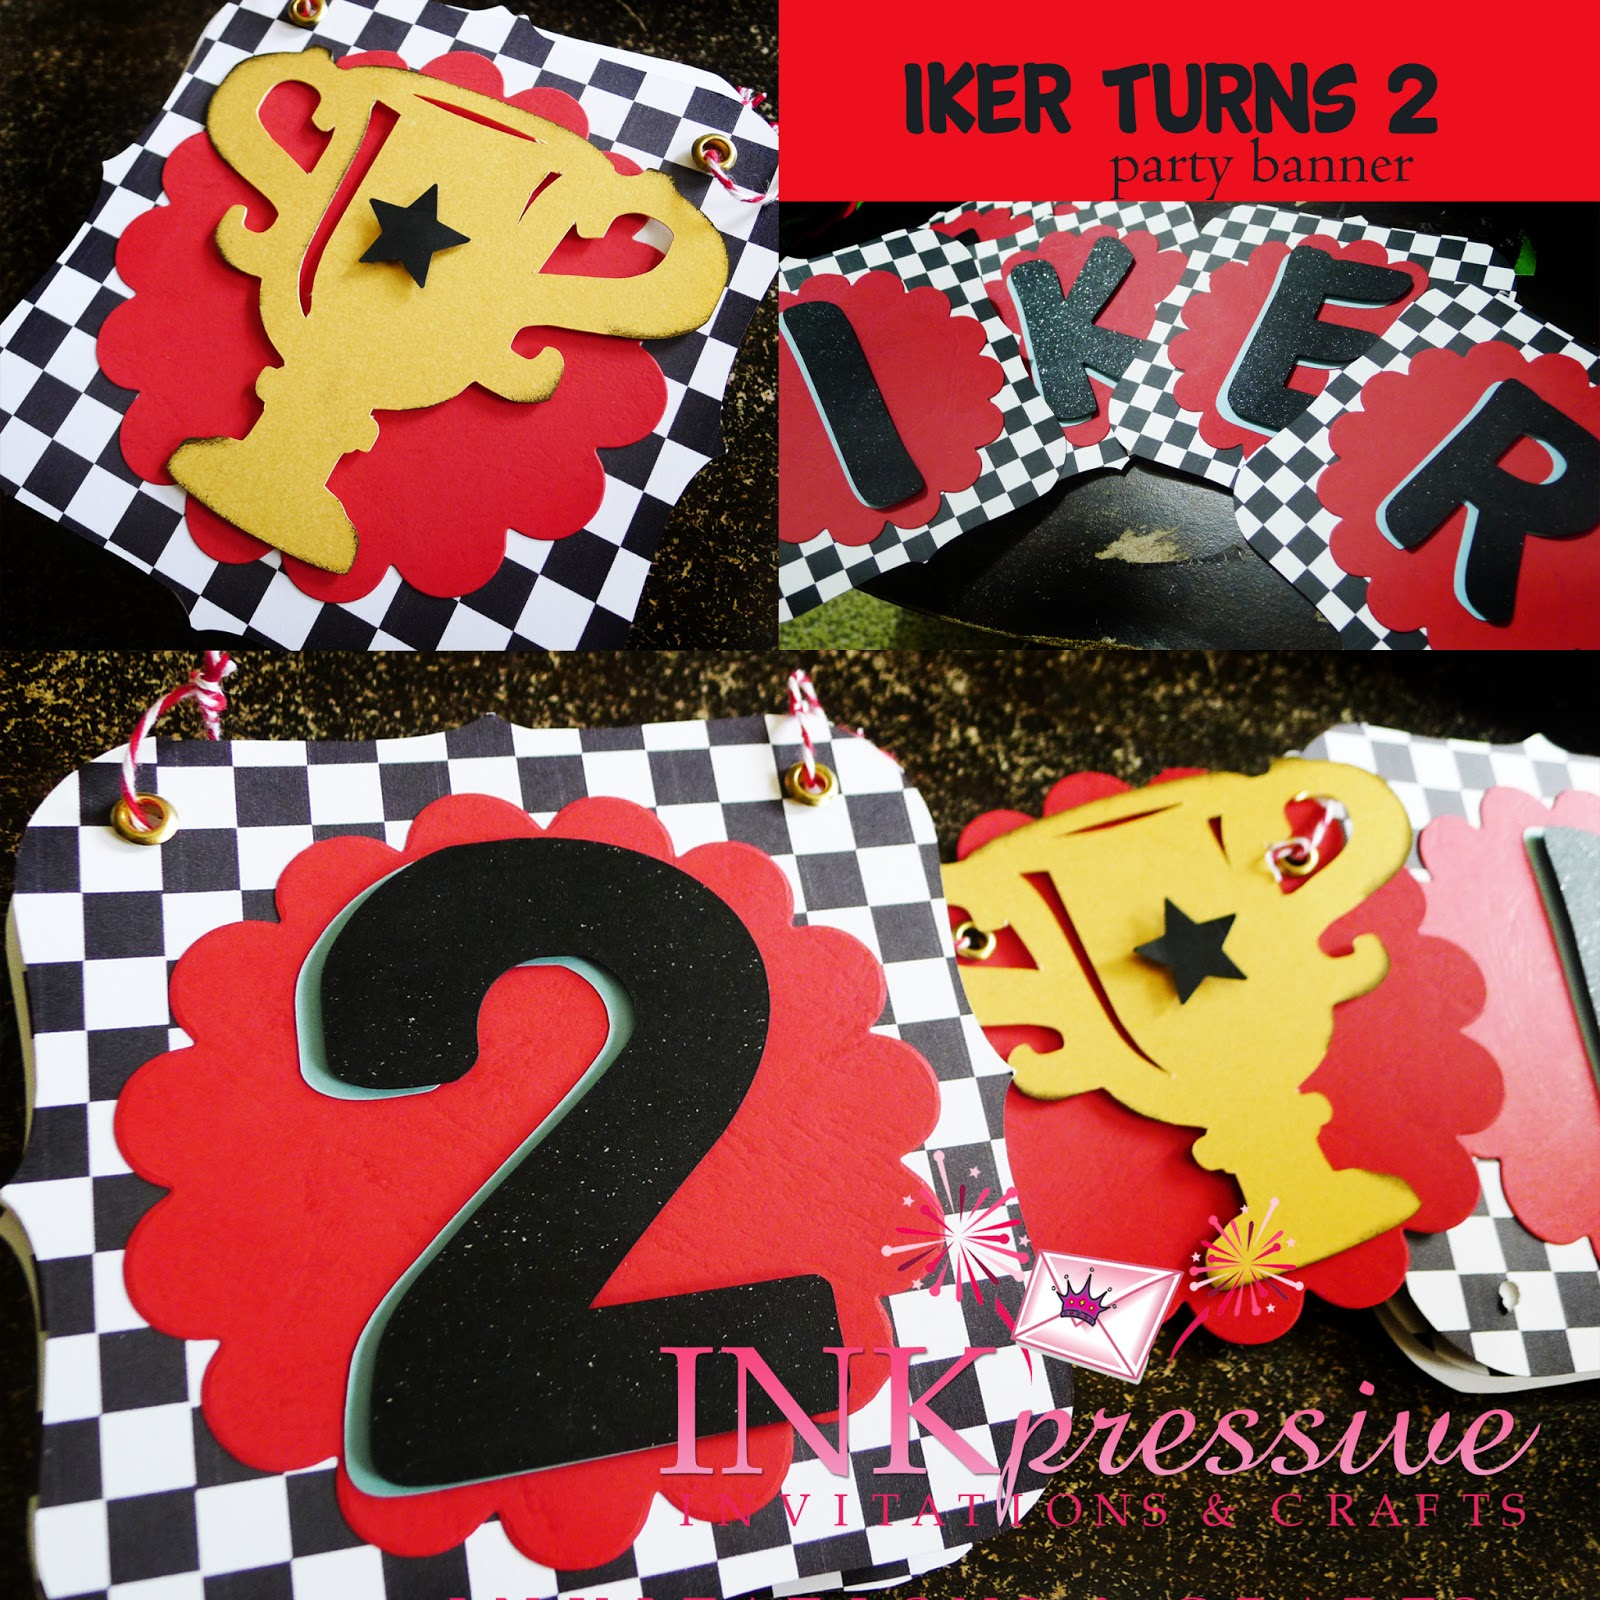 Ferrari Racing Theme Personalized Party Banner and Guest Book